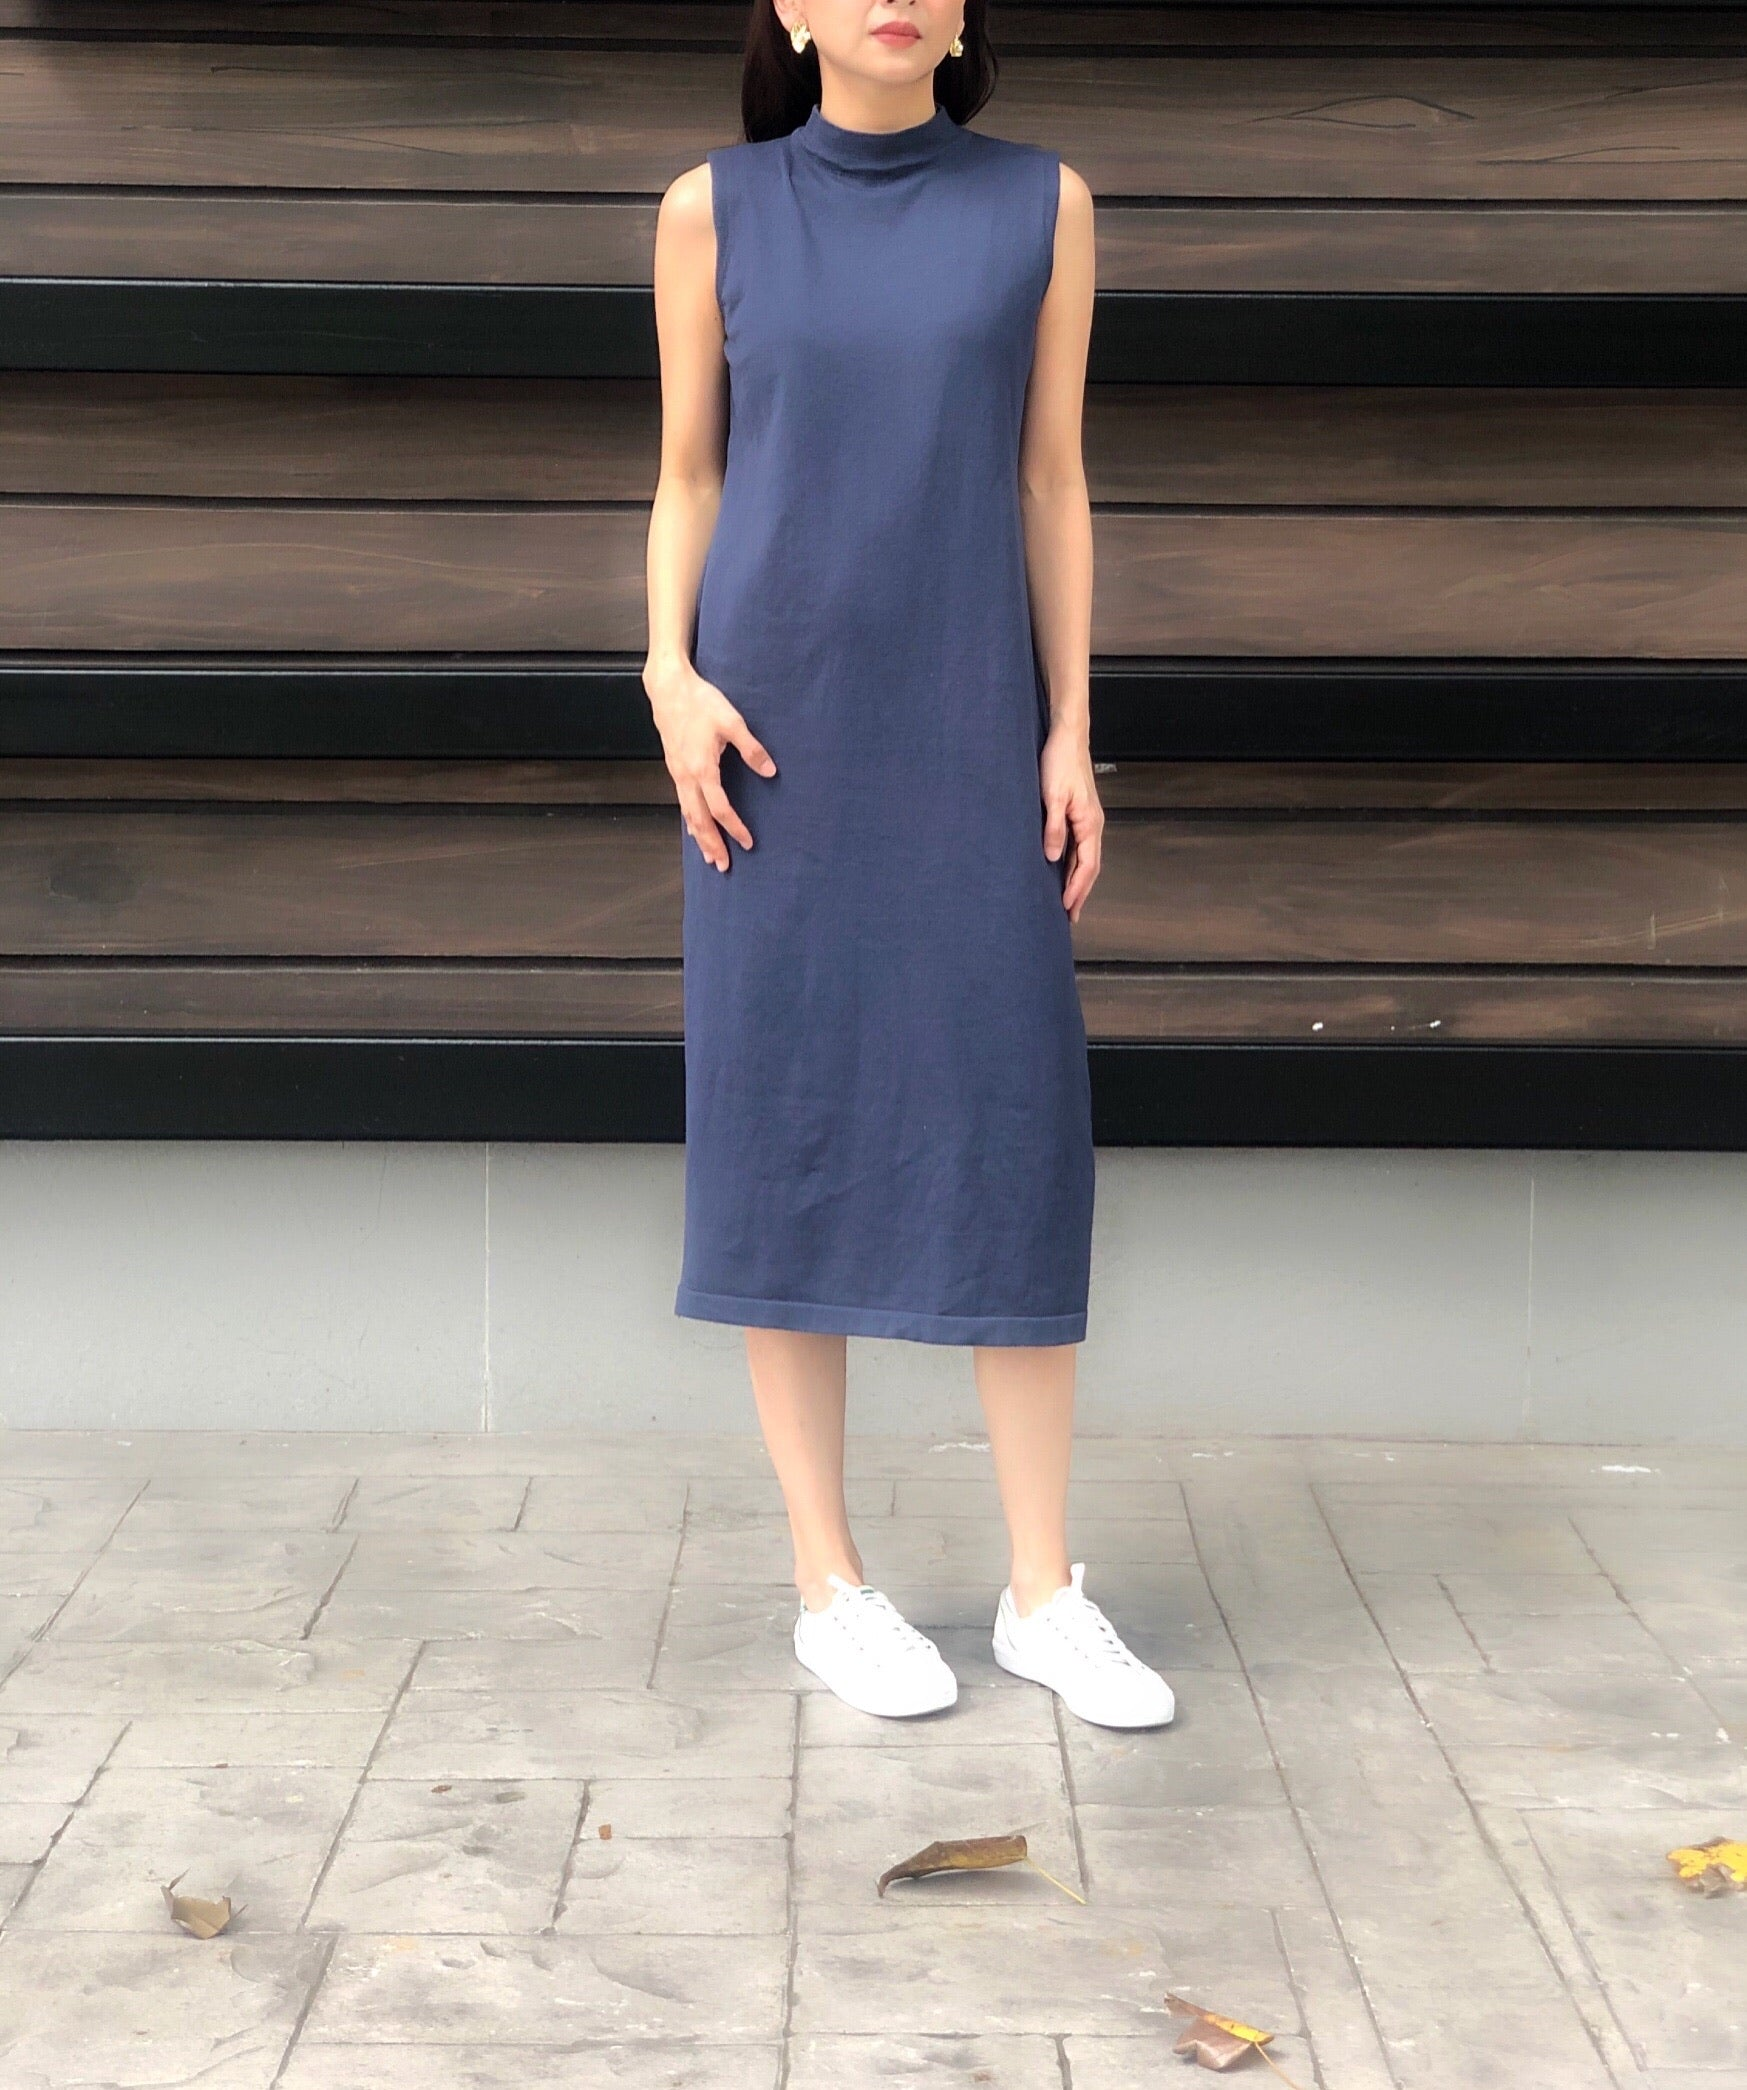 Leonore S/L Knitted Dress in Blue